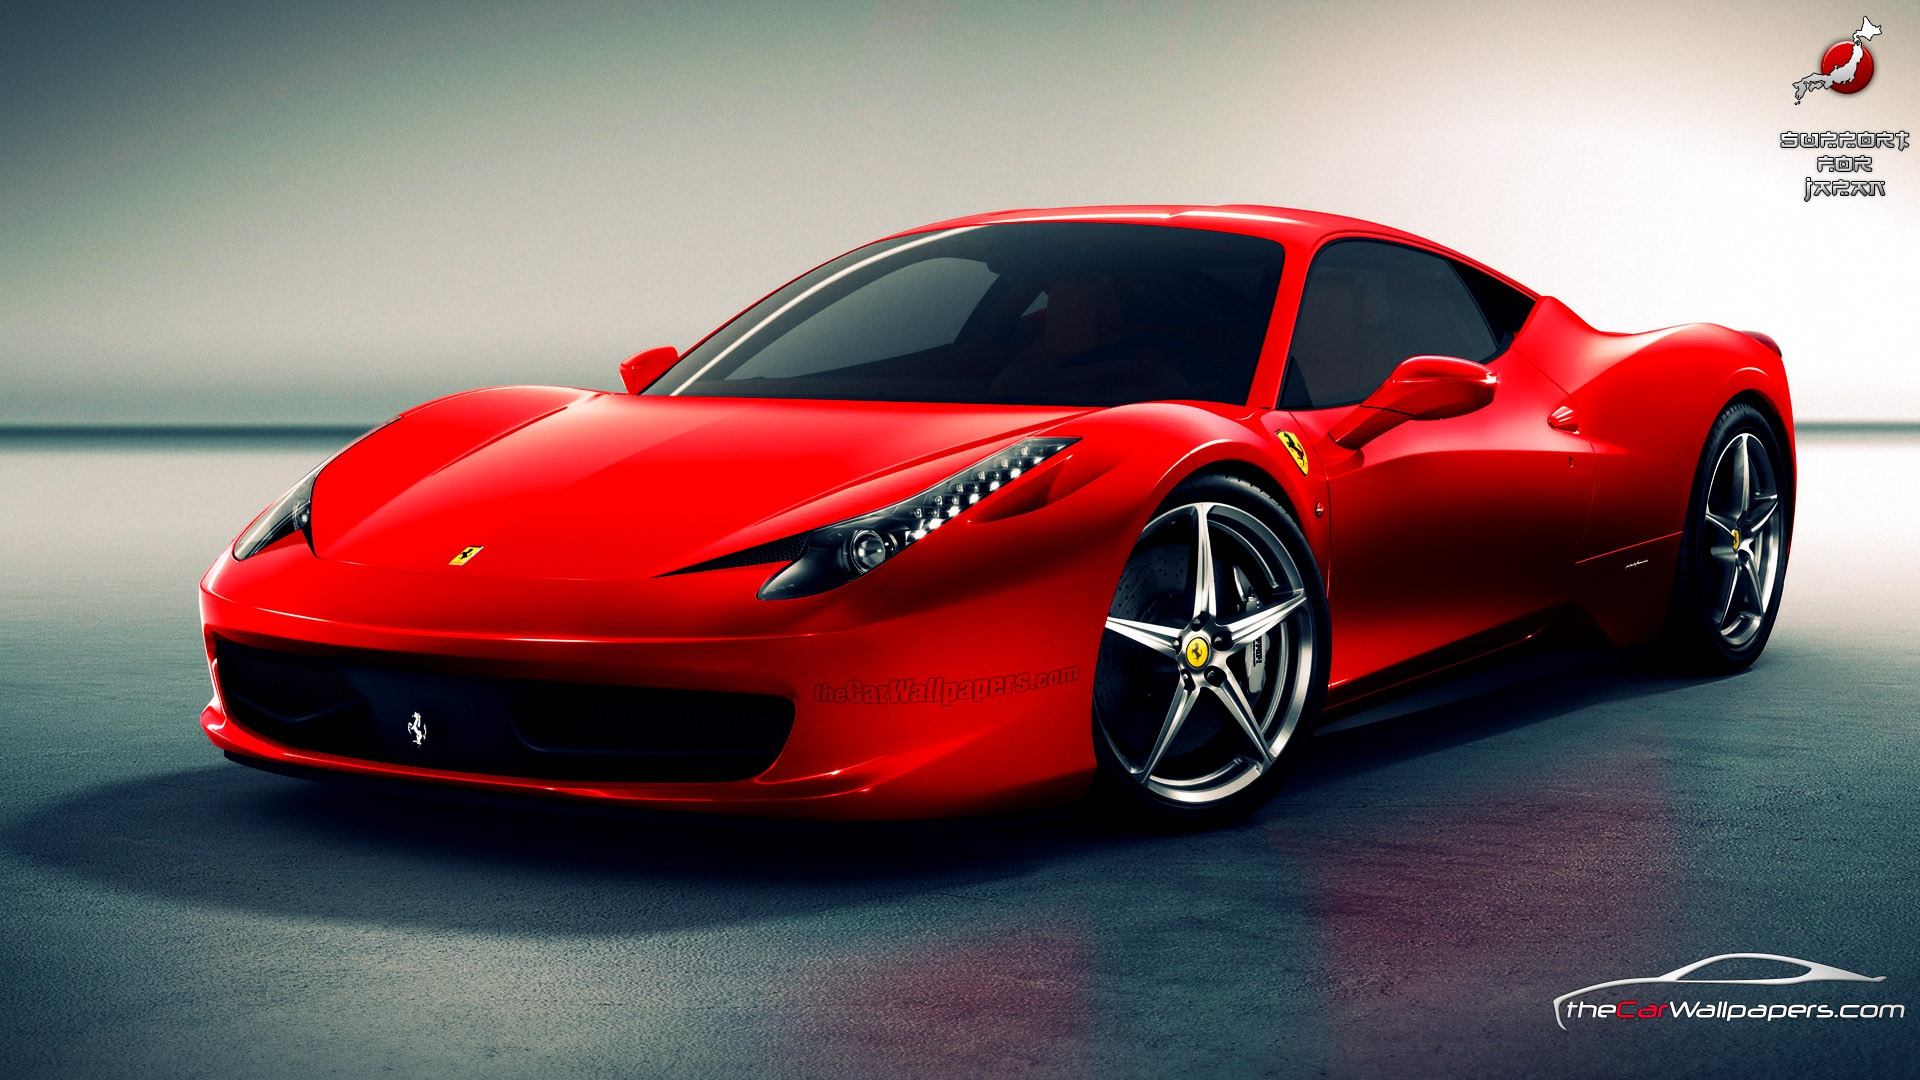 ferrari 458 italia wallpaper Car Pictures 1920x1080